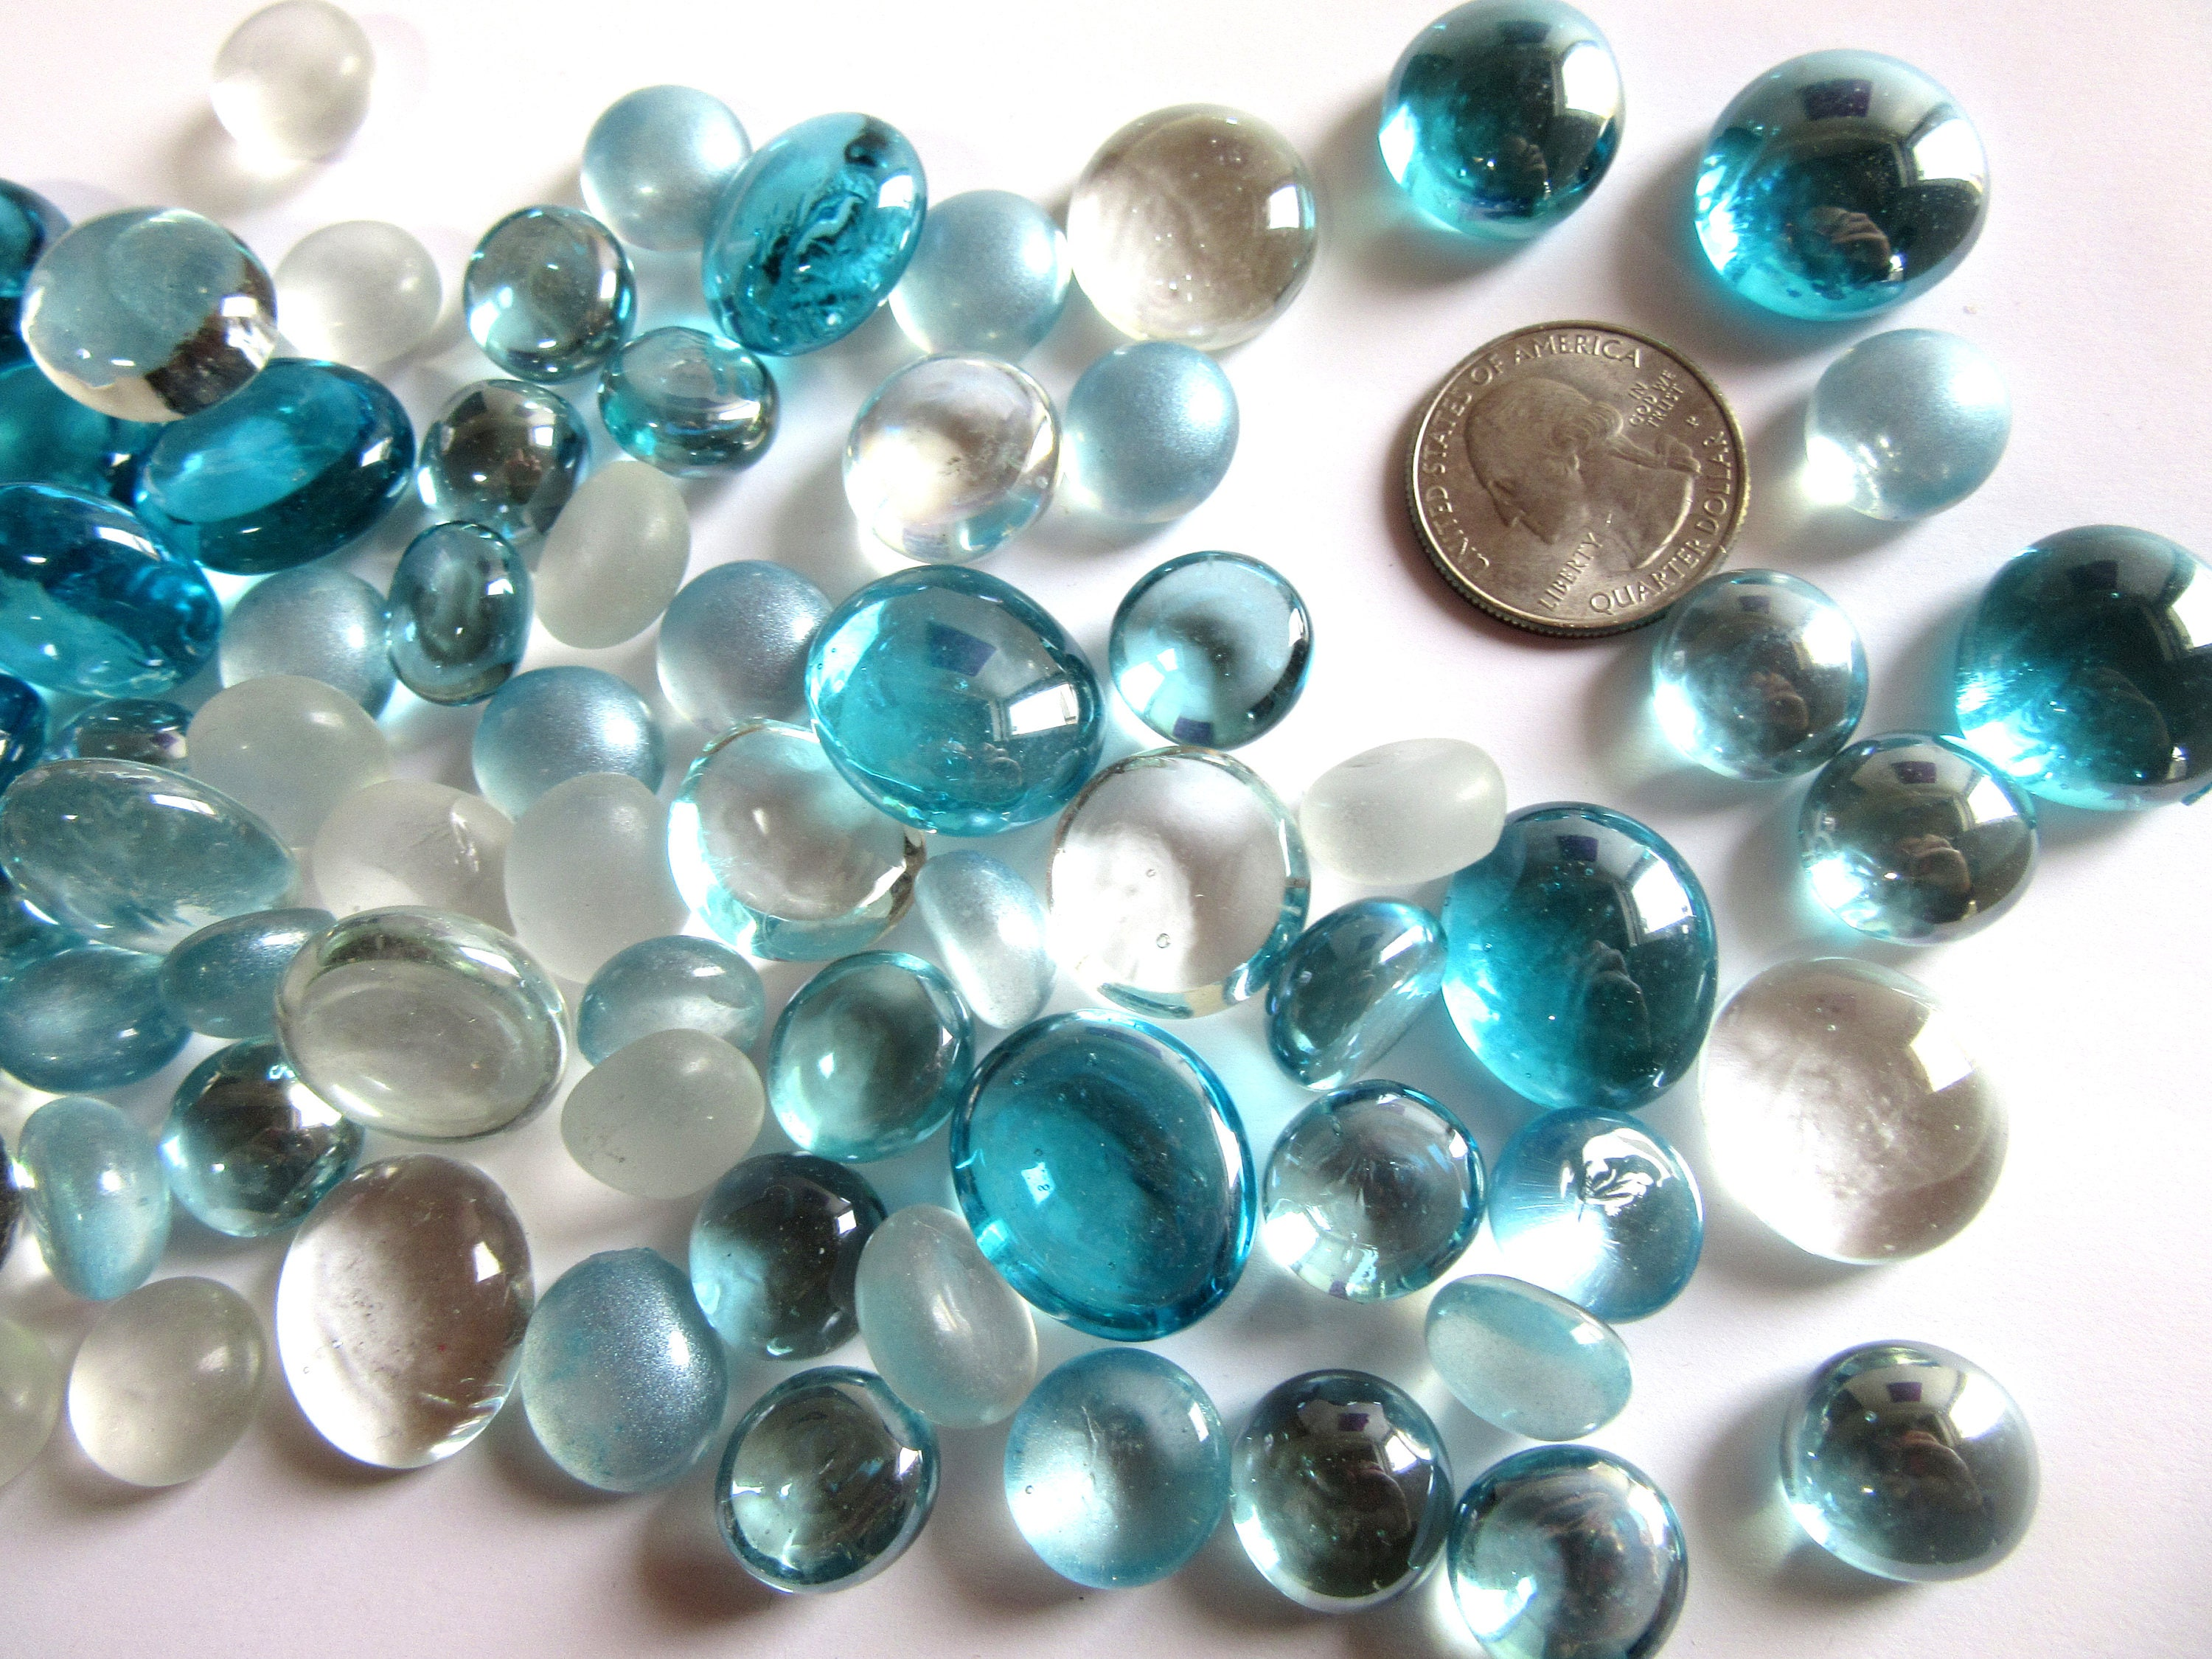 100 mixed color glass gems blue and clear vase fillers seafoam 100 mixed color glass gems blue and clear vase fillers seafoam blue flat marbles ocean blue decor marbles aqua vase fillers mixed size reviewsmspy